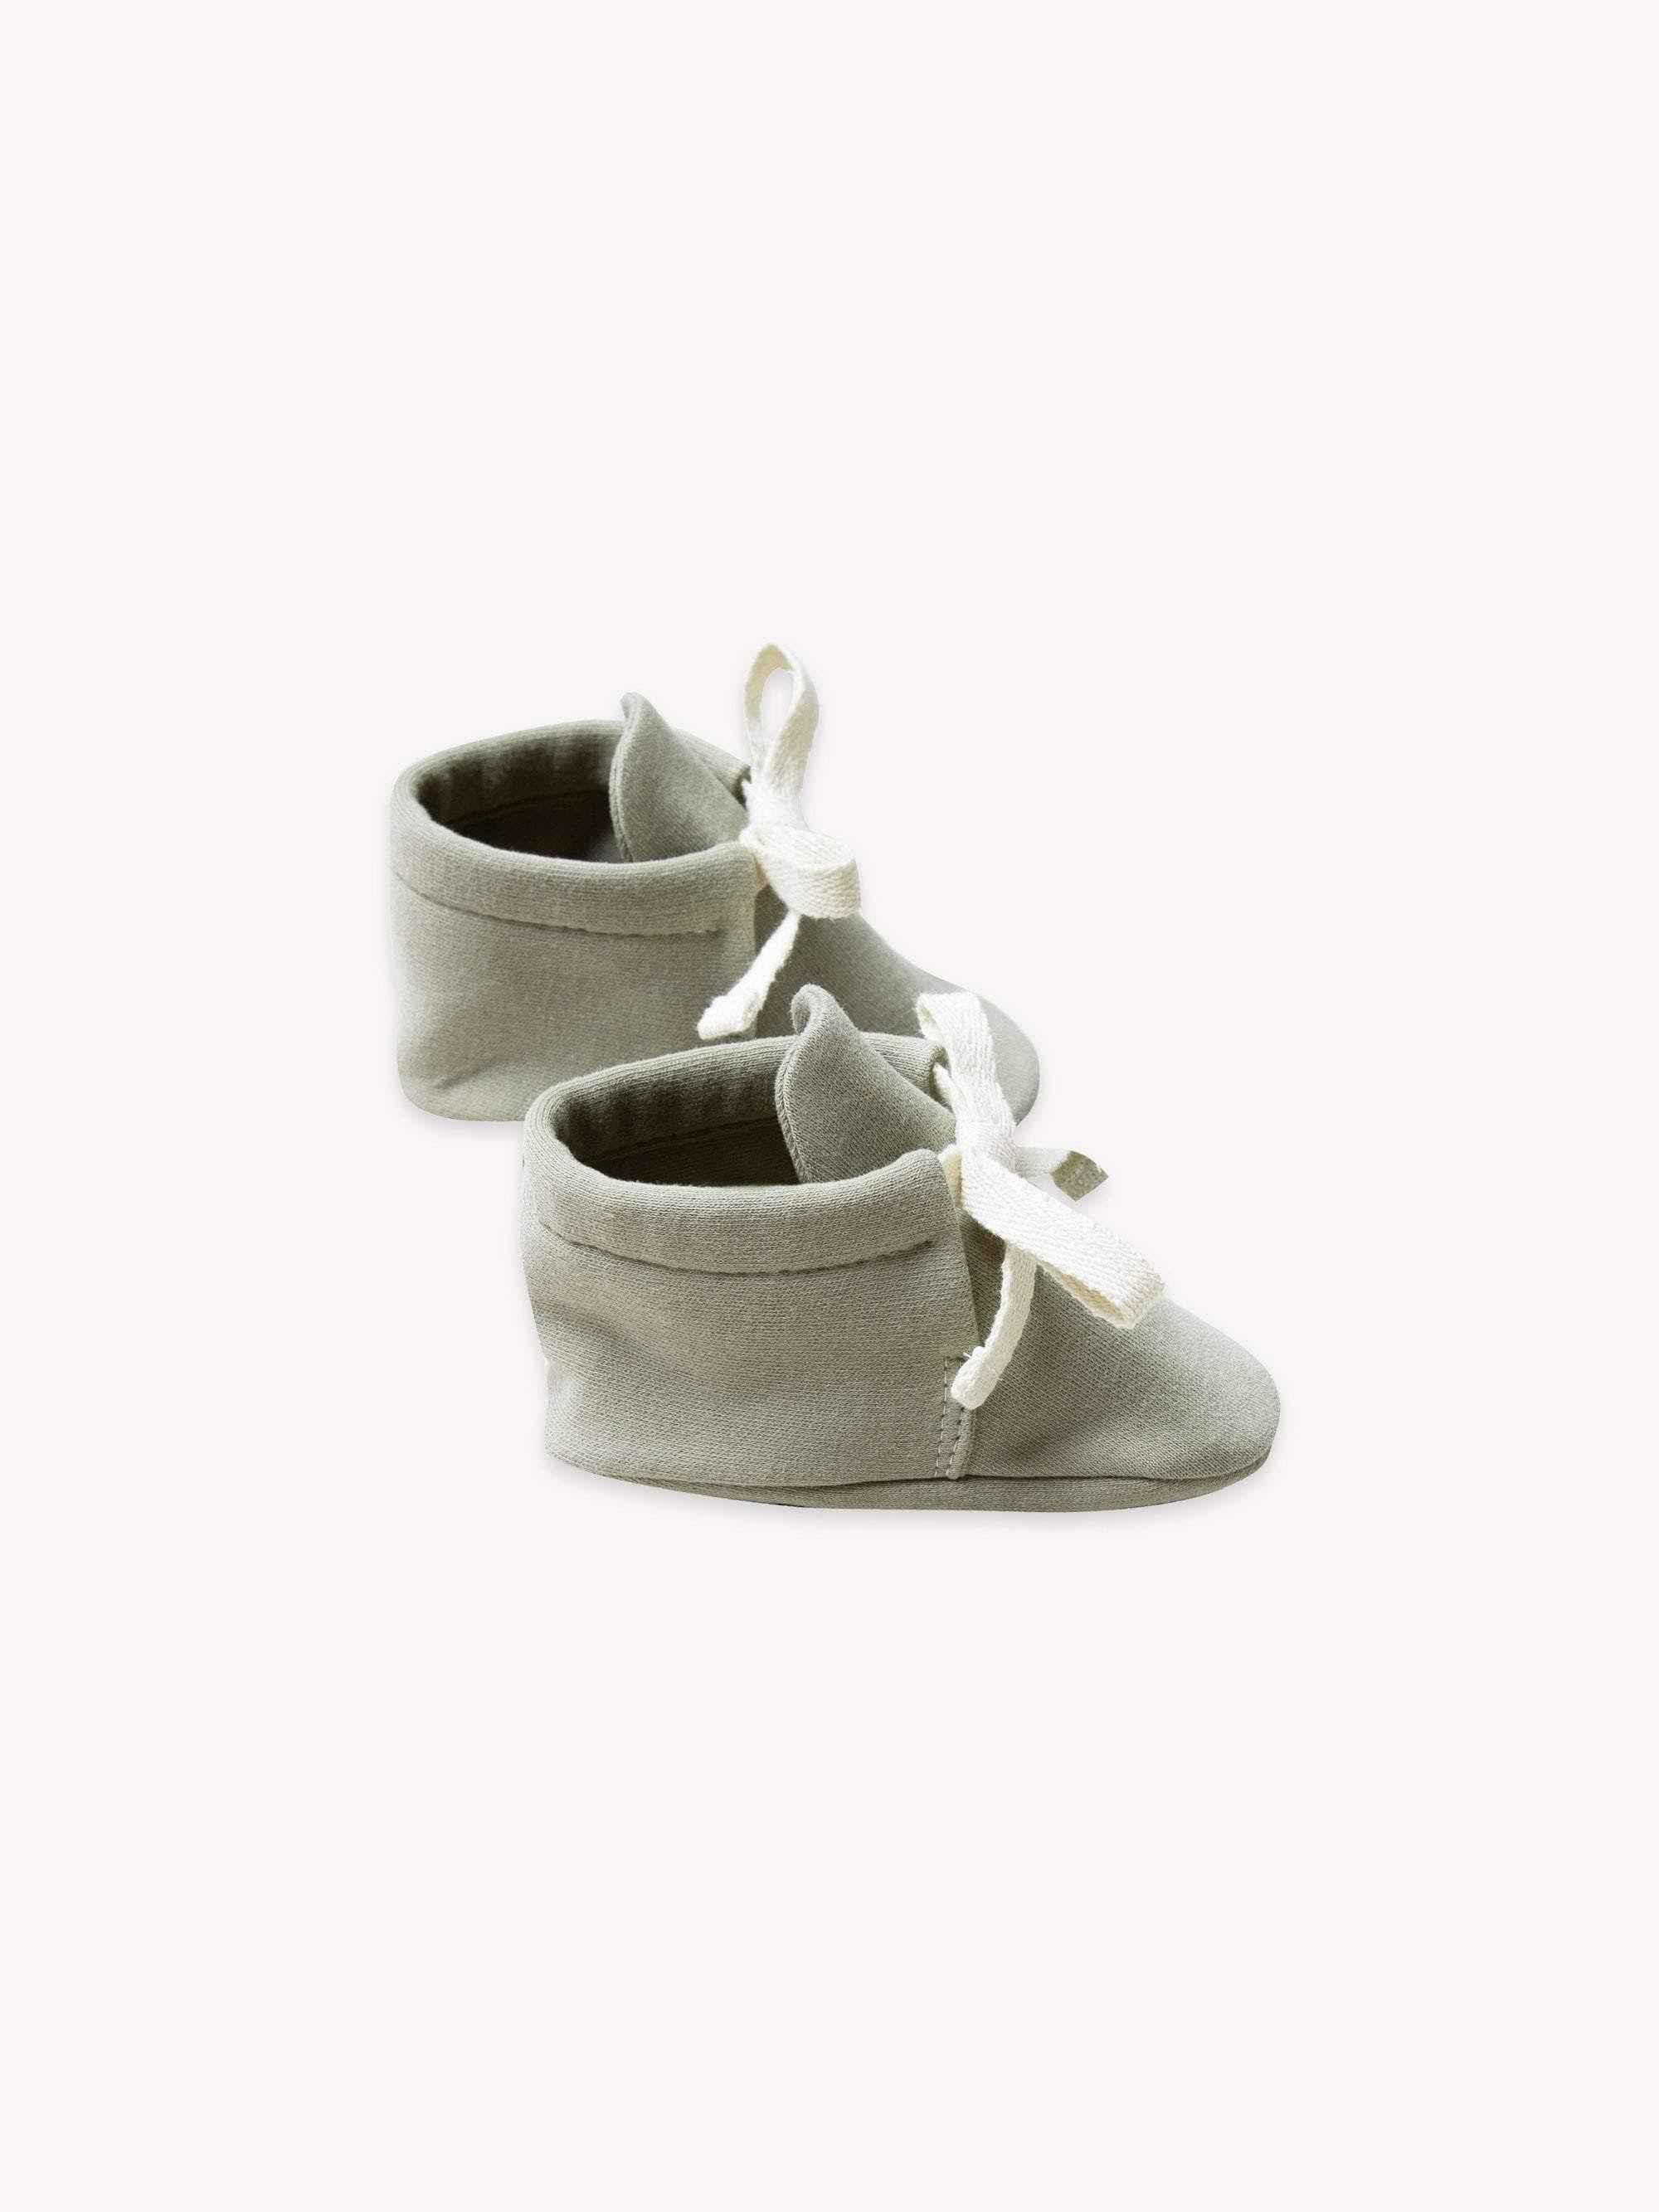 Quincy Mae Sage Baby Booties 6-12M